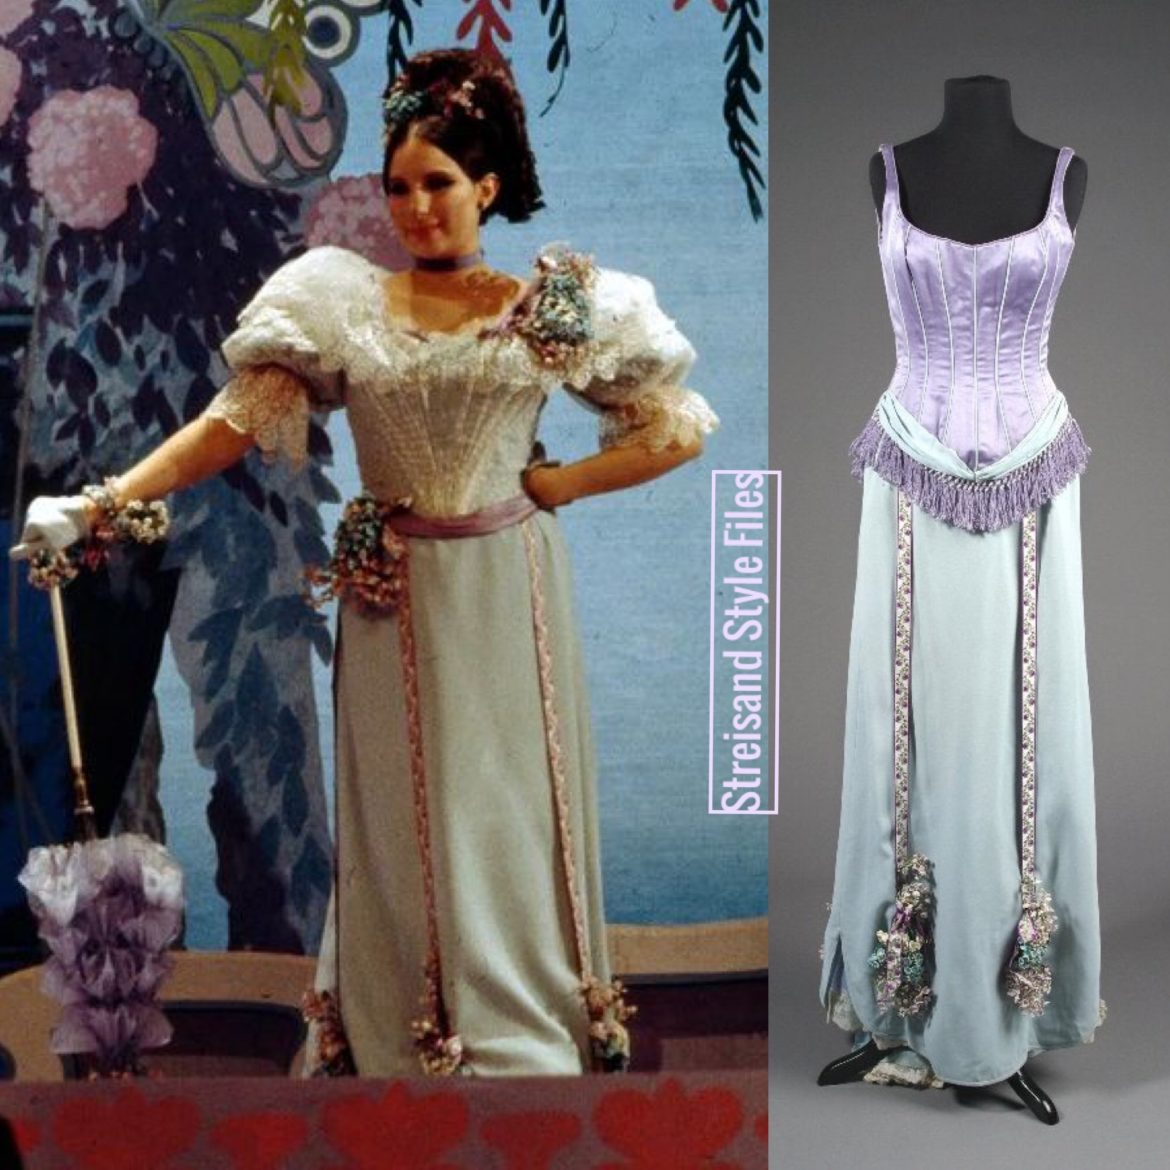 The Belle Of 14th Street Victorian Breakaway Gown